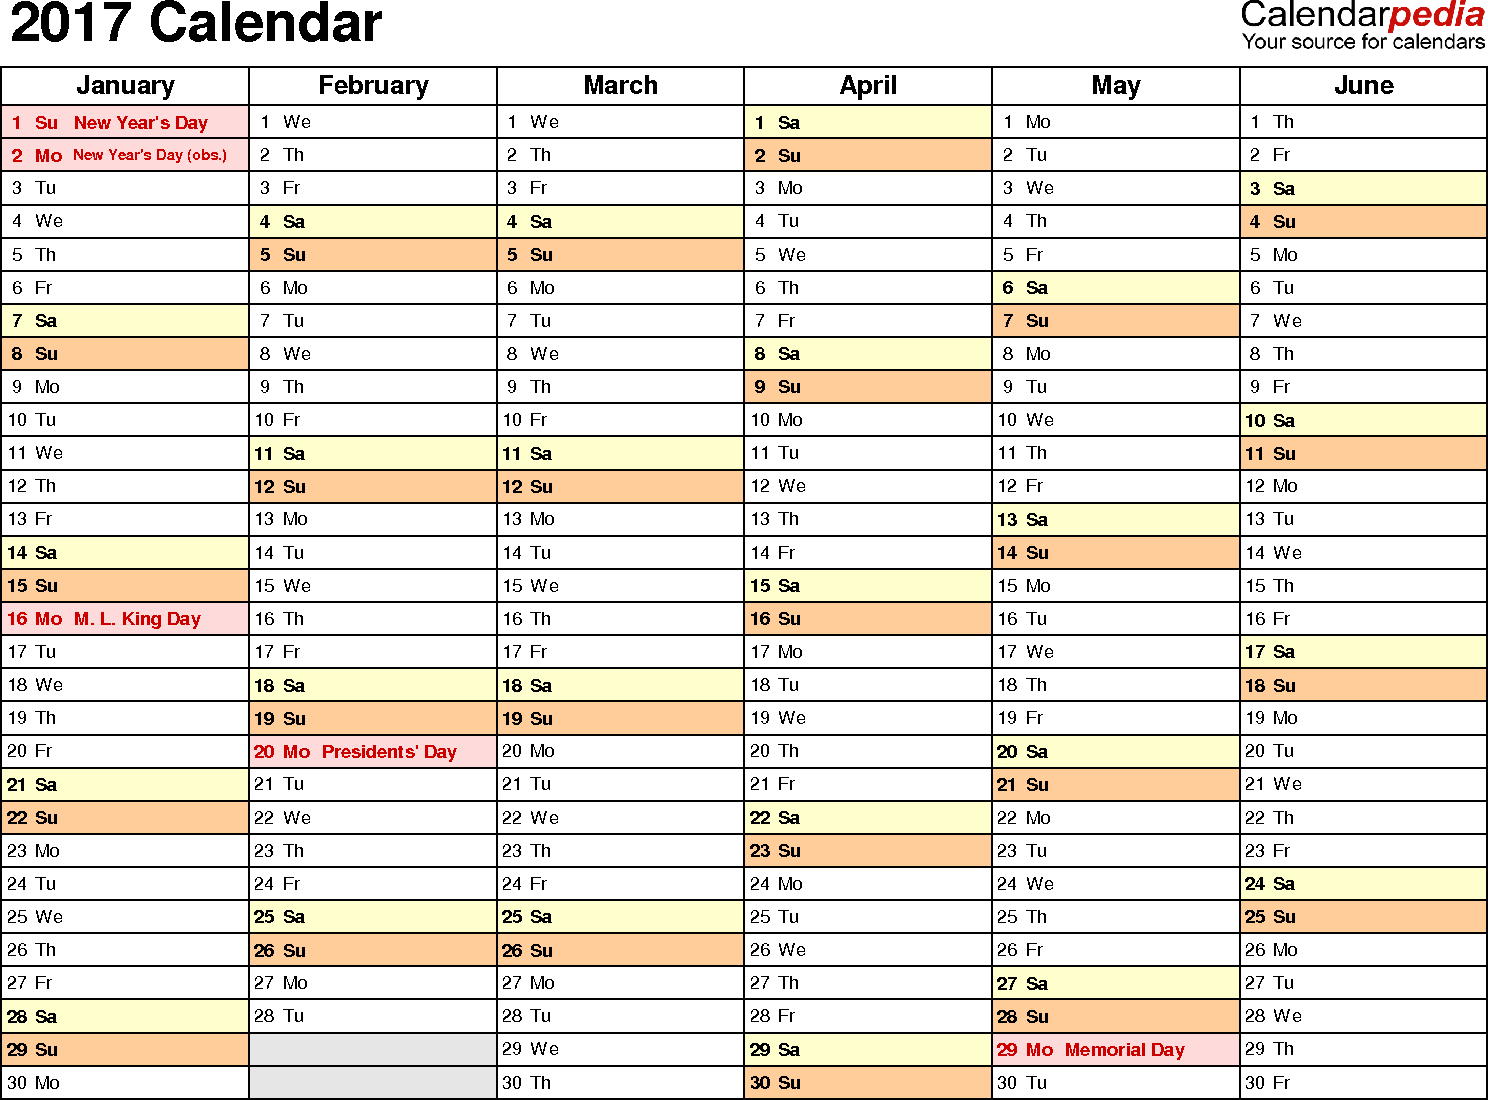 Ediblewildsus  Sweet  Calendar  Download  Free Printable Excel Templates Xls With Engaging Template   Calendar For Excel Months Horizontally  Pages Landscape Orientation With Comely Calculate Standard Error In Excel Also If Condition In Excel In Addition Kutools For Excel And How To Highlight Text In Excel As Well As Formula In Excel Additionally How To Delete Extra Rows In Excel From Calendarpediacom With Ediblewildsus  Engaging  Calendar  Download  Free Printable Excel Templates Xls With Comely Template   Calendar For Excel Months Horizontally  Pages Landscape Orientation And Sweet Calculate Standard Error In Excel Also If Condition In Excel In Addition Kutools For Excel From Calendarpediacom